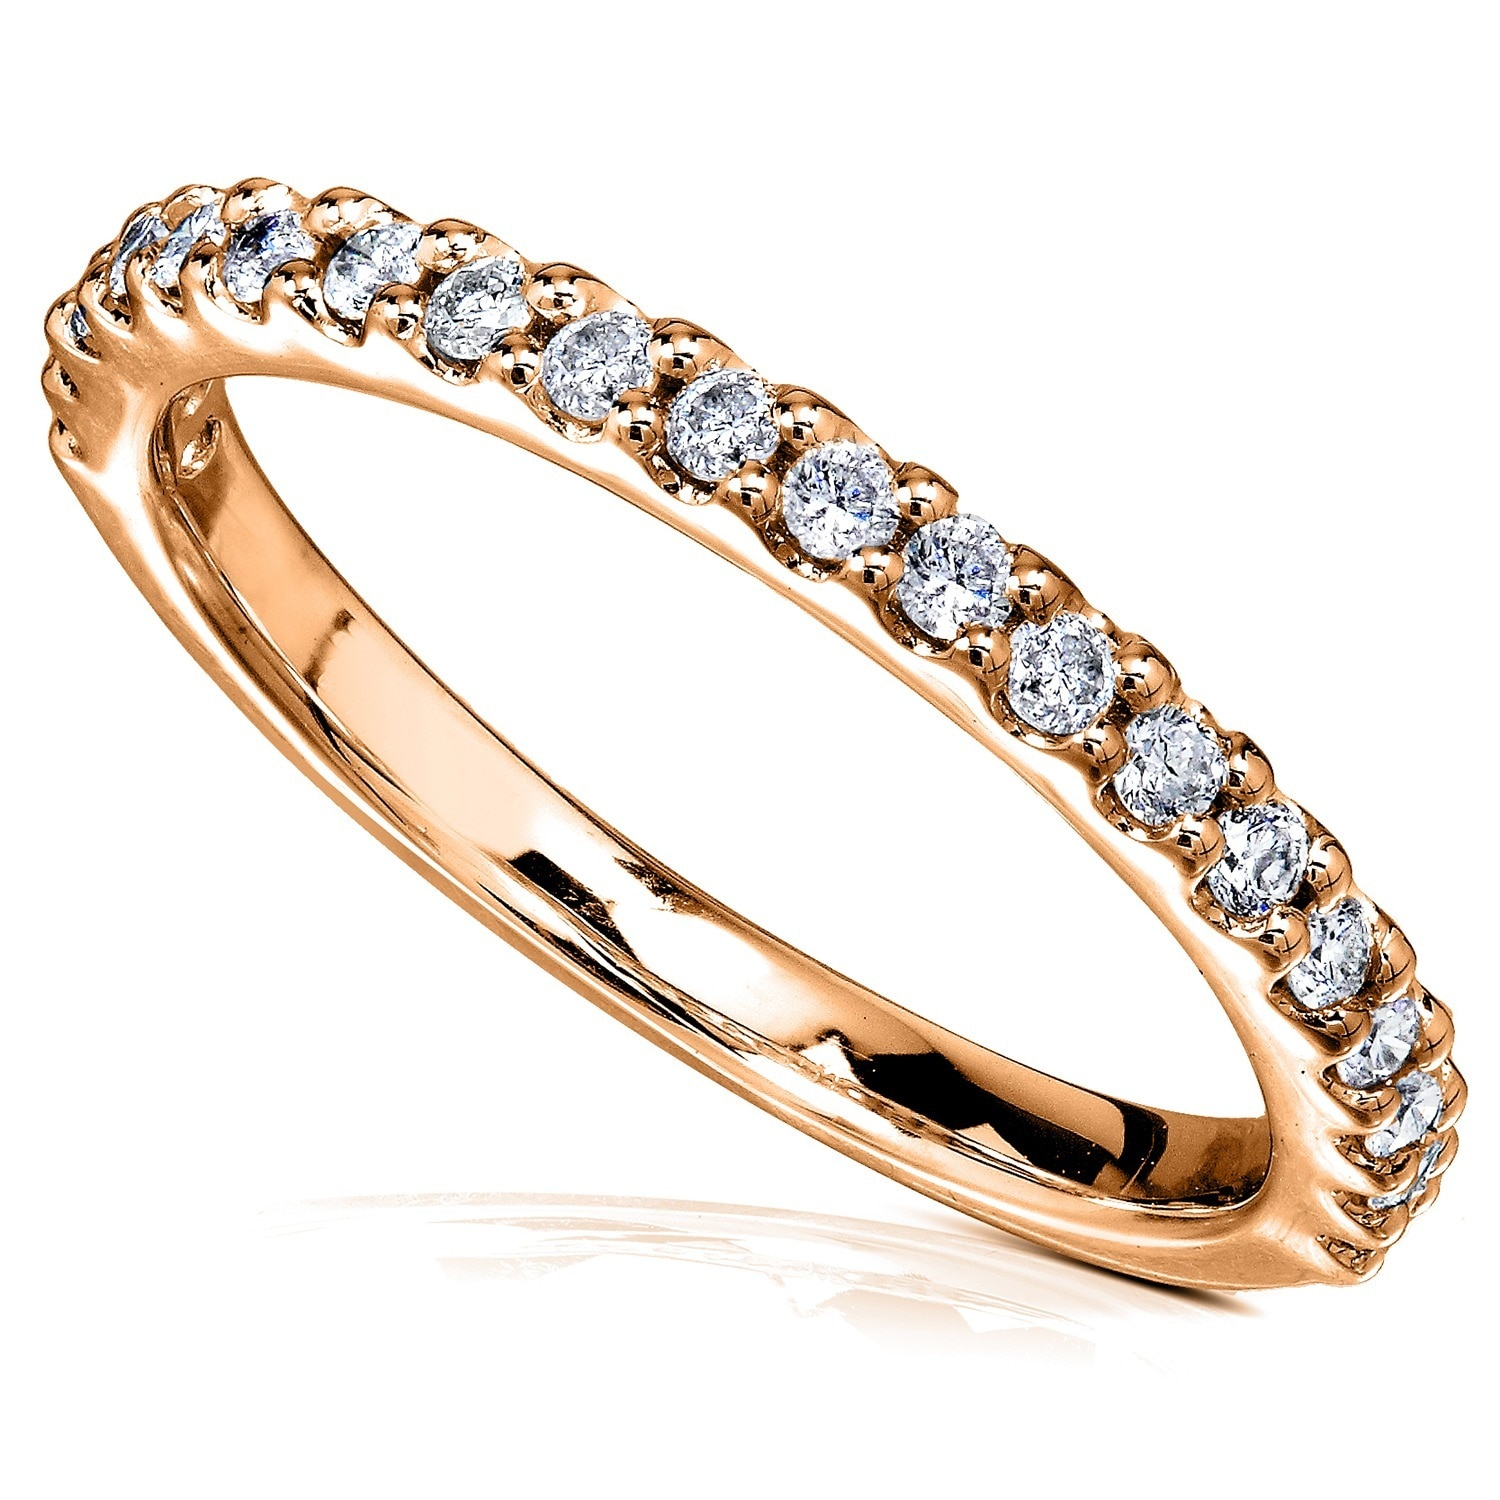 ffffff hd row double jewellery zoe eternity bands ring product diamond cut half princess semi rings band s jr